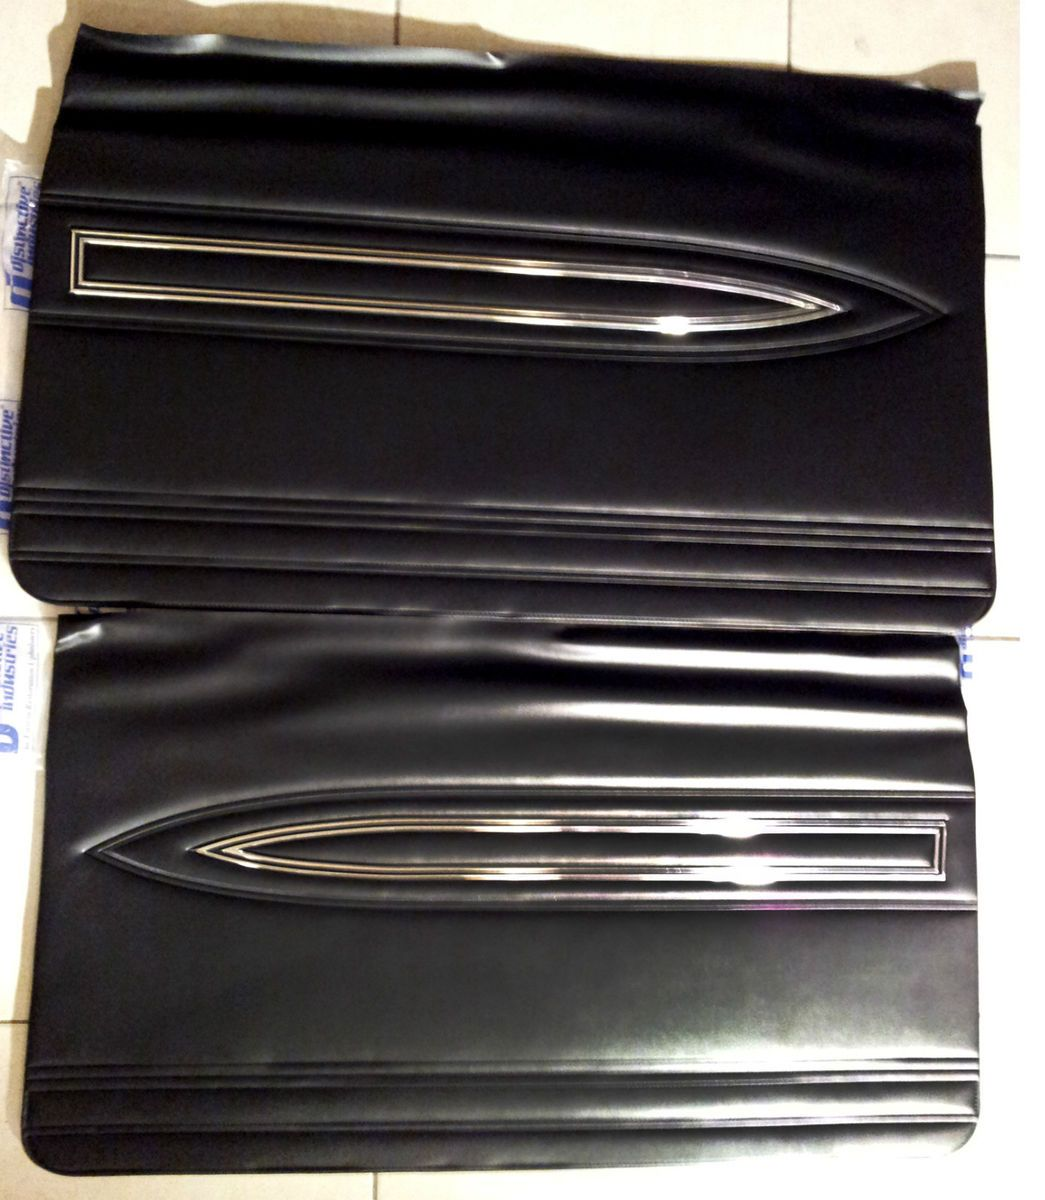 New Pair of Door Trim Panels 1971 Ford Torino GT Fastback Convertible